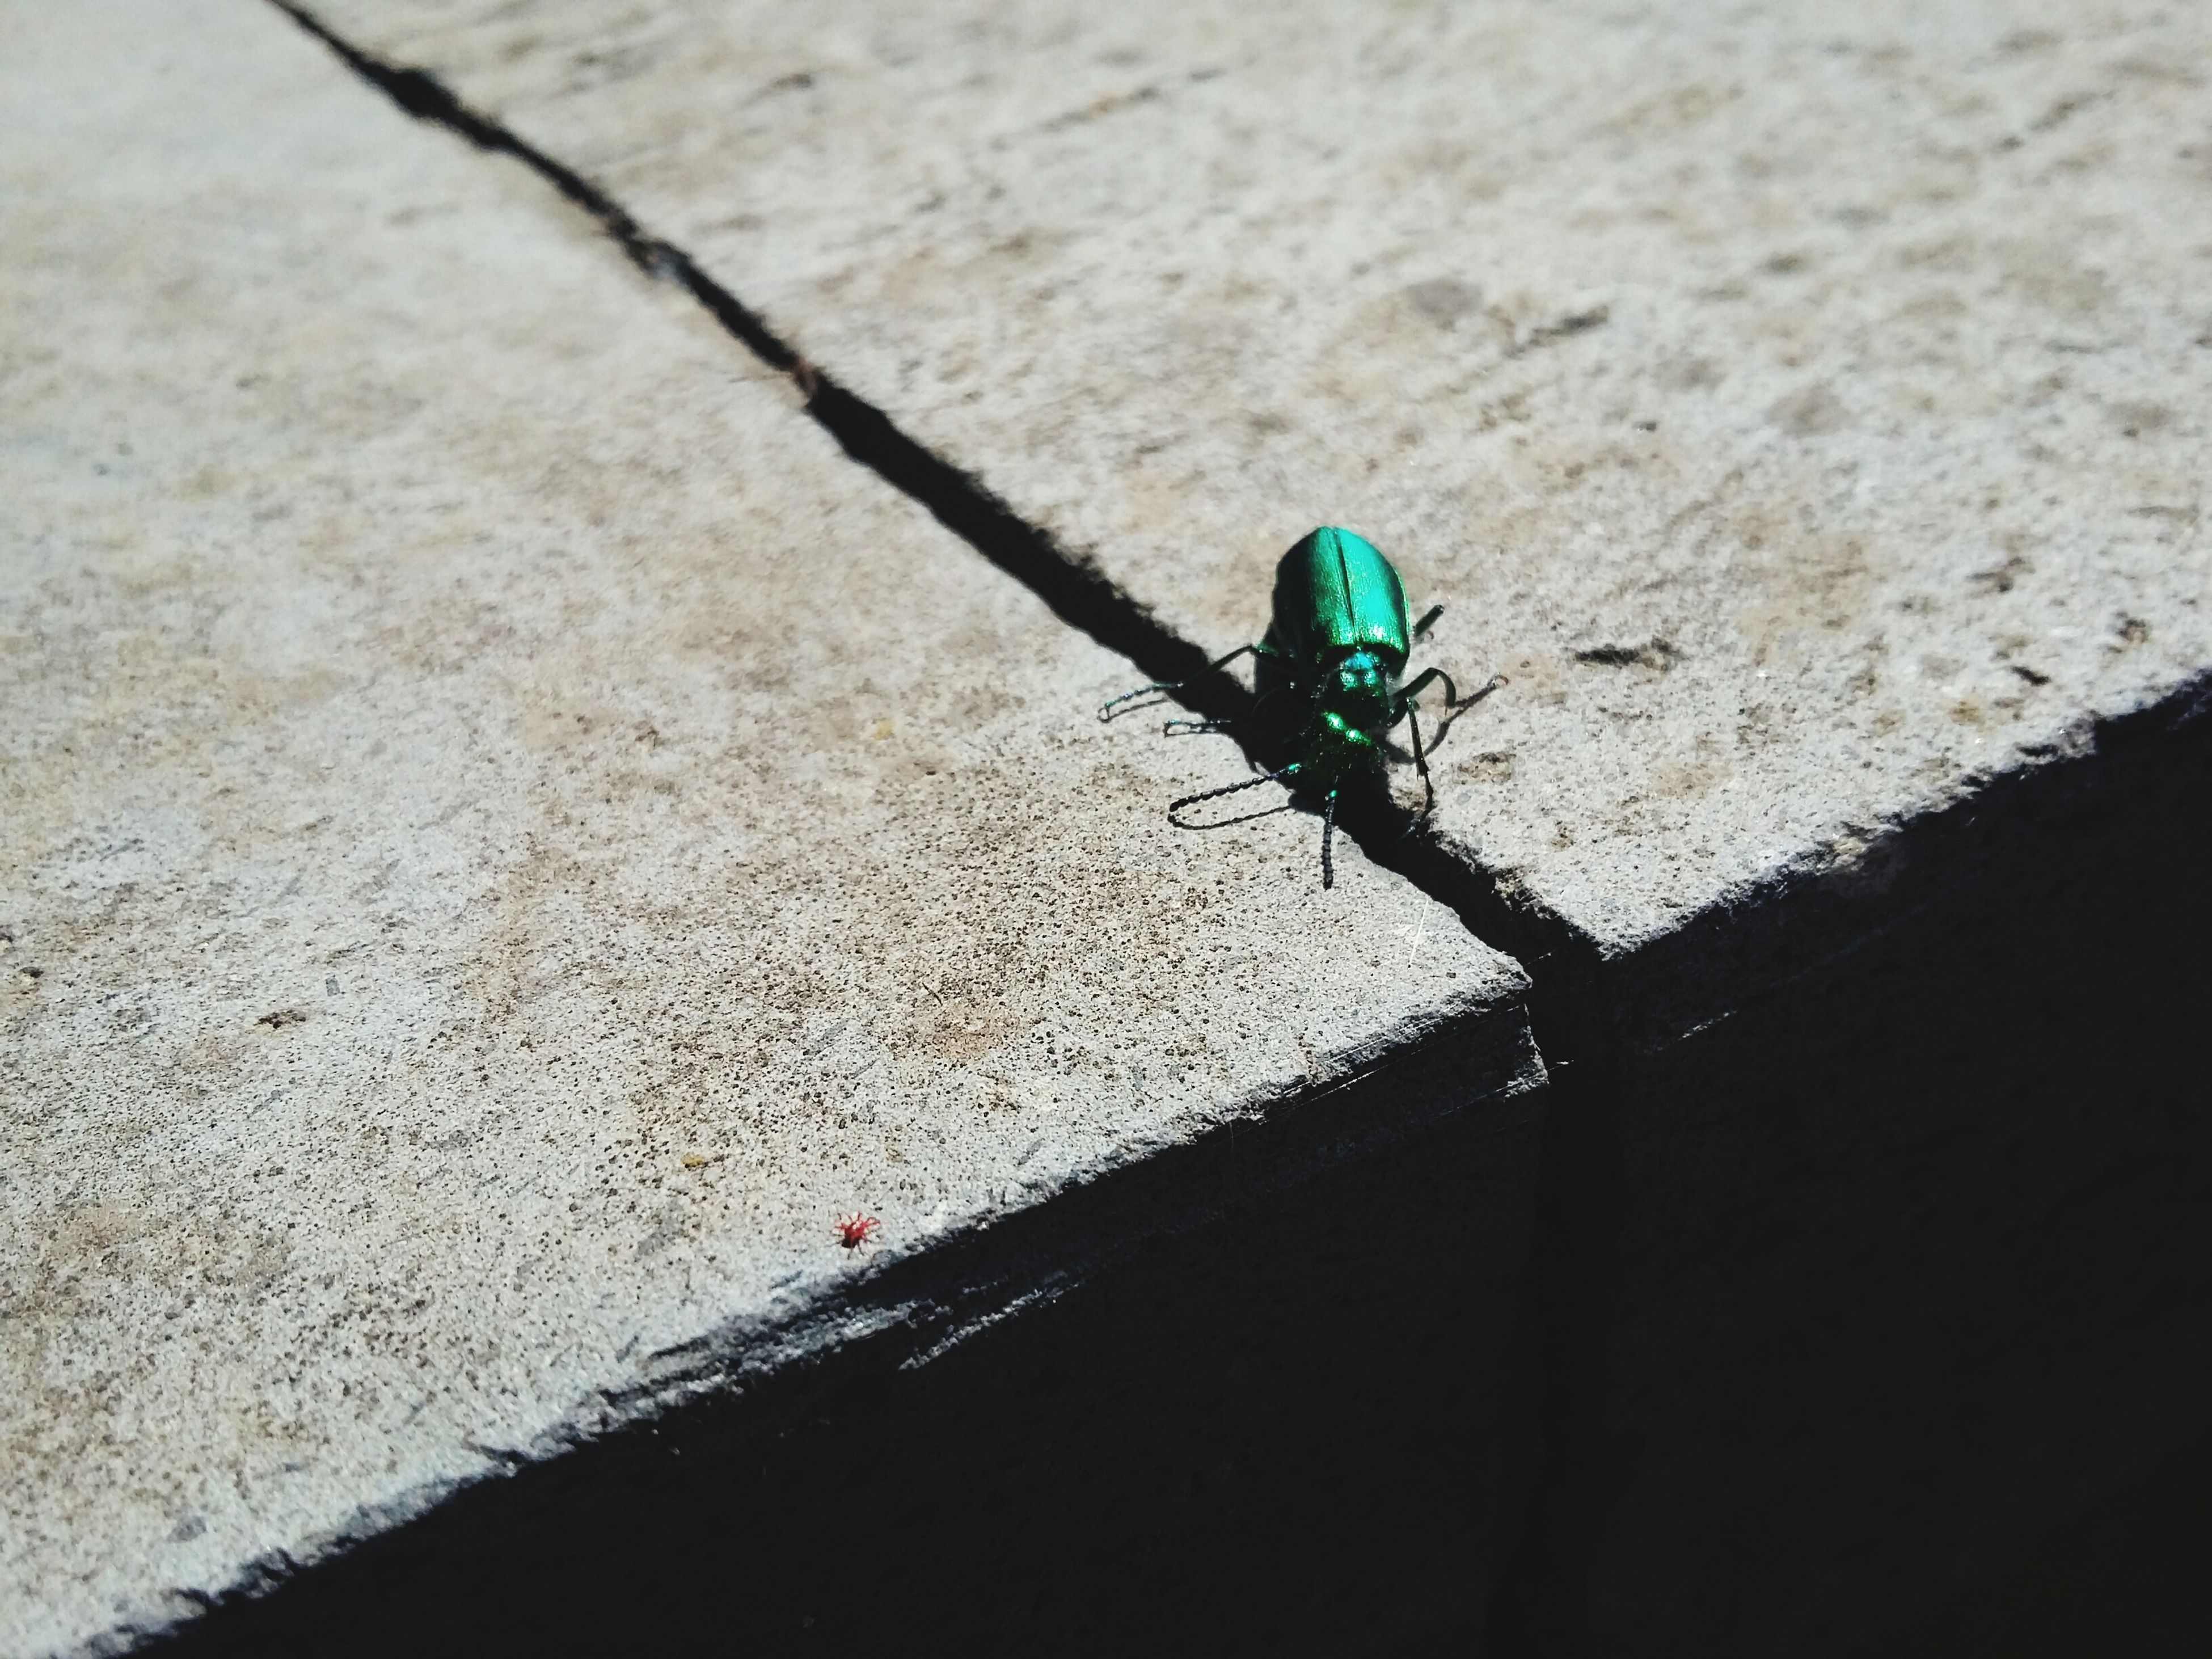 one animal, animal themes, insect, animals in the wild, wildlife, full length, high angle view, day, shadow, outdoors, no people, close-up, sunlight, nature, street, road, wall - building feature, selective focus, zoology, focus on foreground